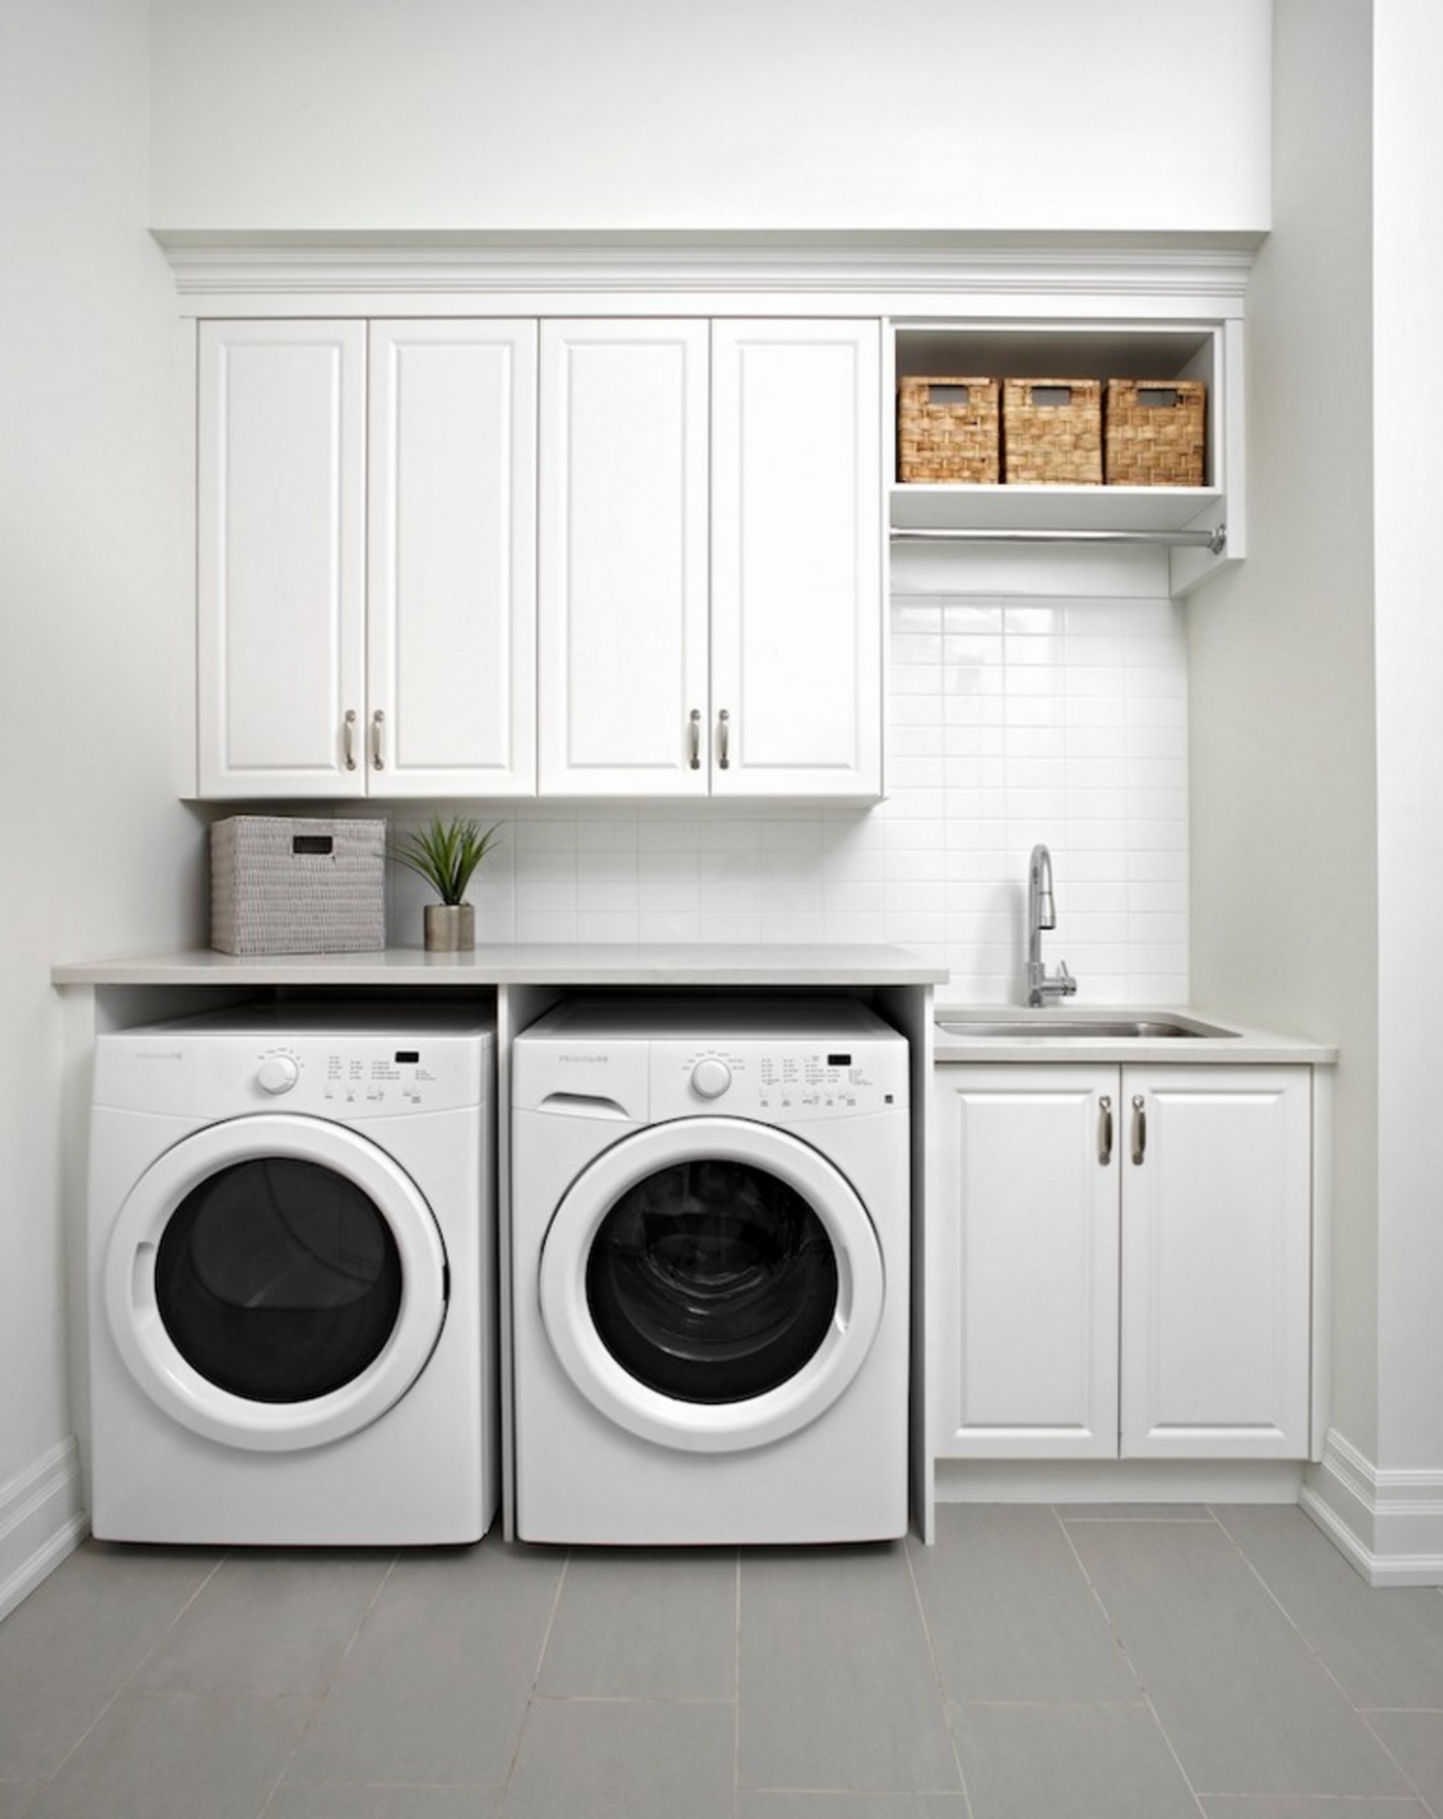 p i n t e r e s t || sarahesilvester (With images) | Laundry room ..